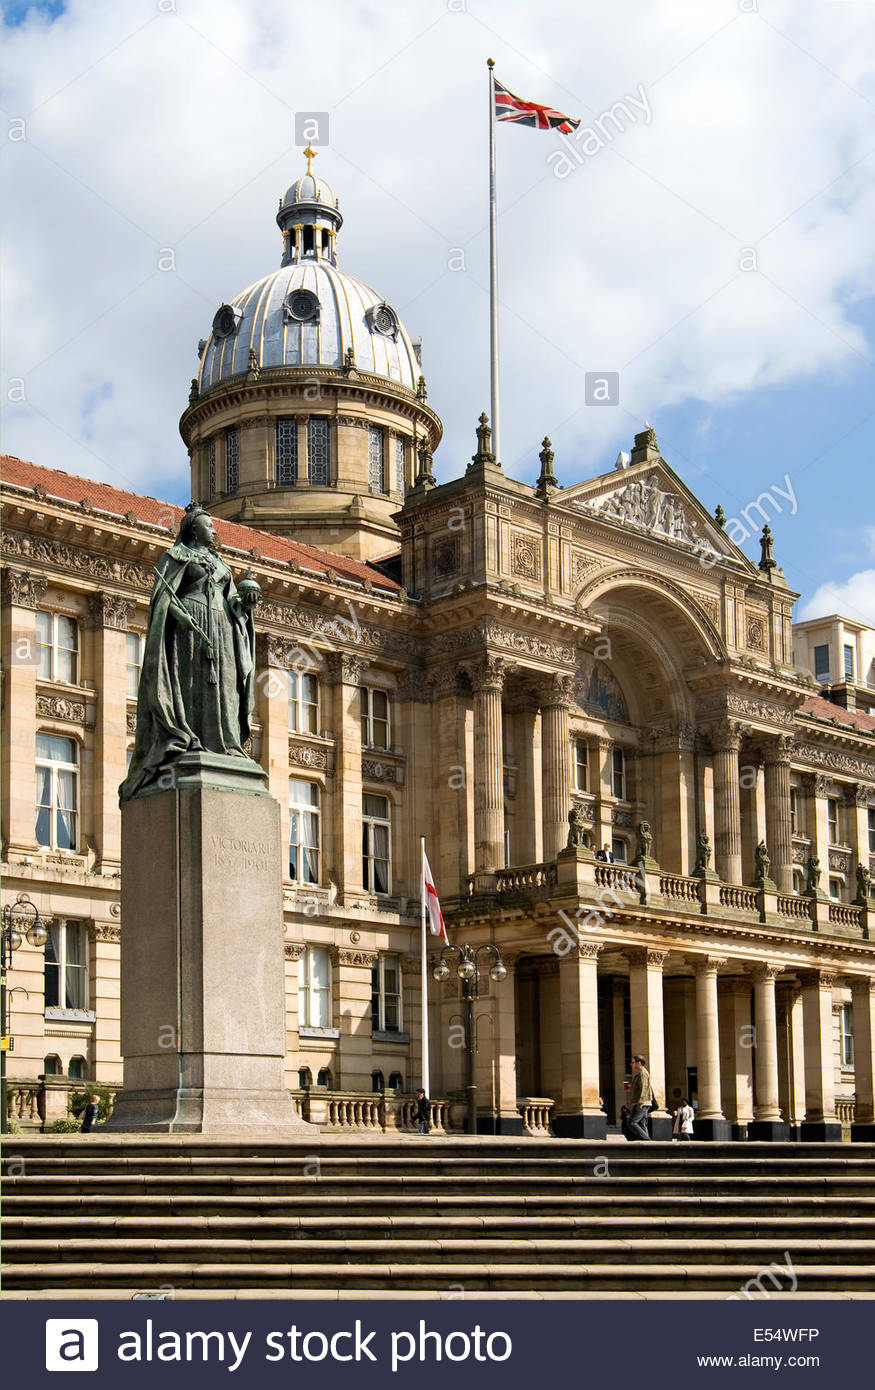 Birmingham Museum & Art Gallery is an art gallery in Birmingham, England. Opened in 1885, it has a collection - Stock Image